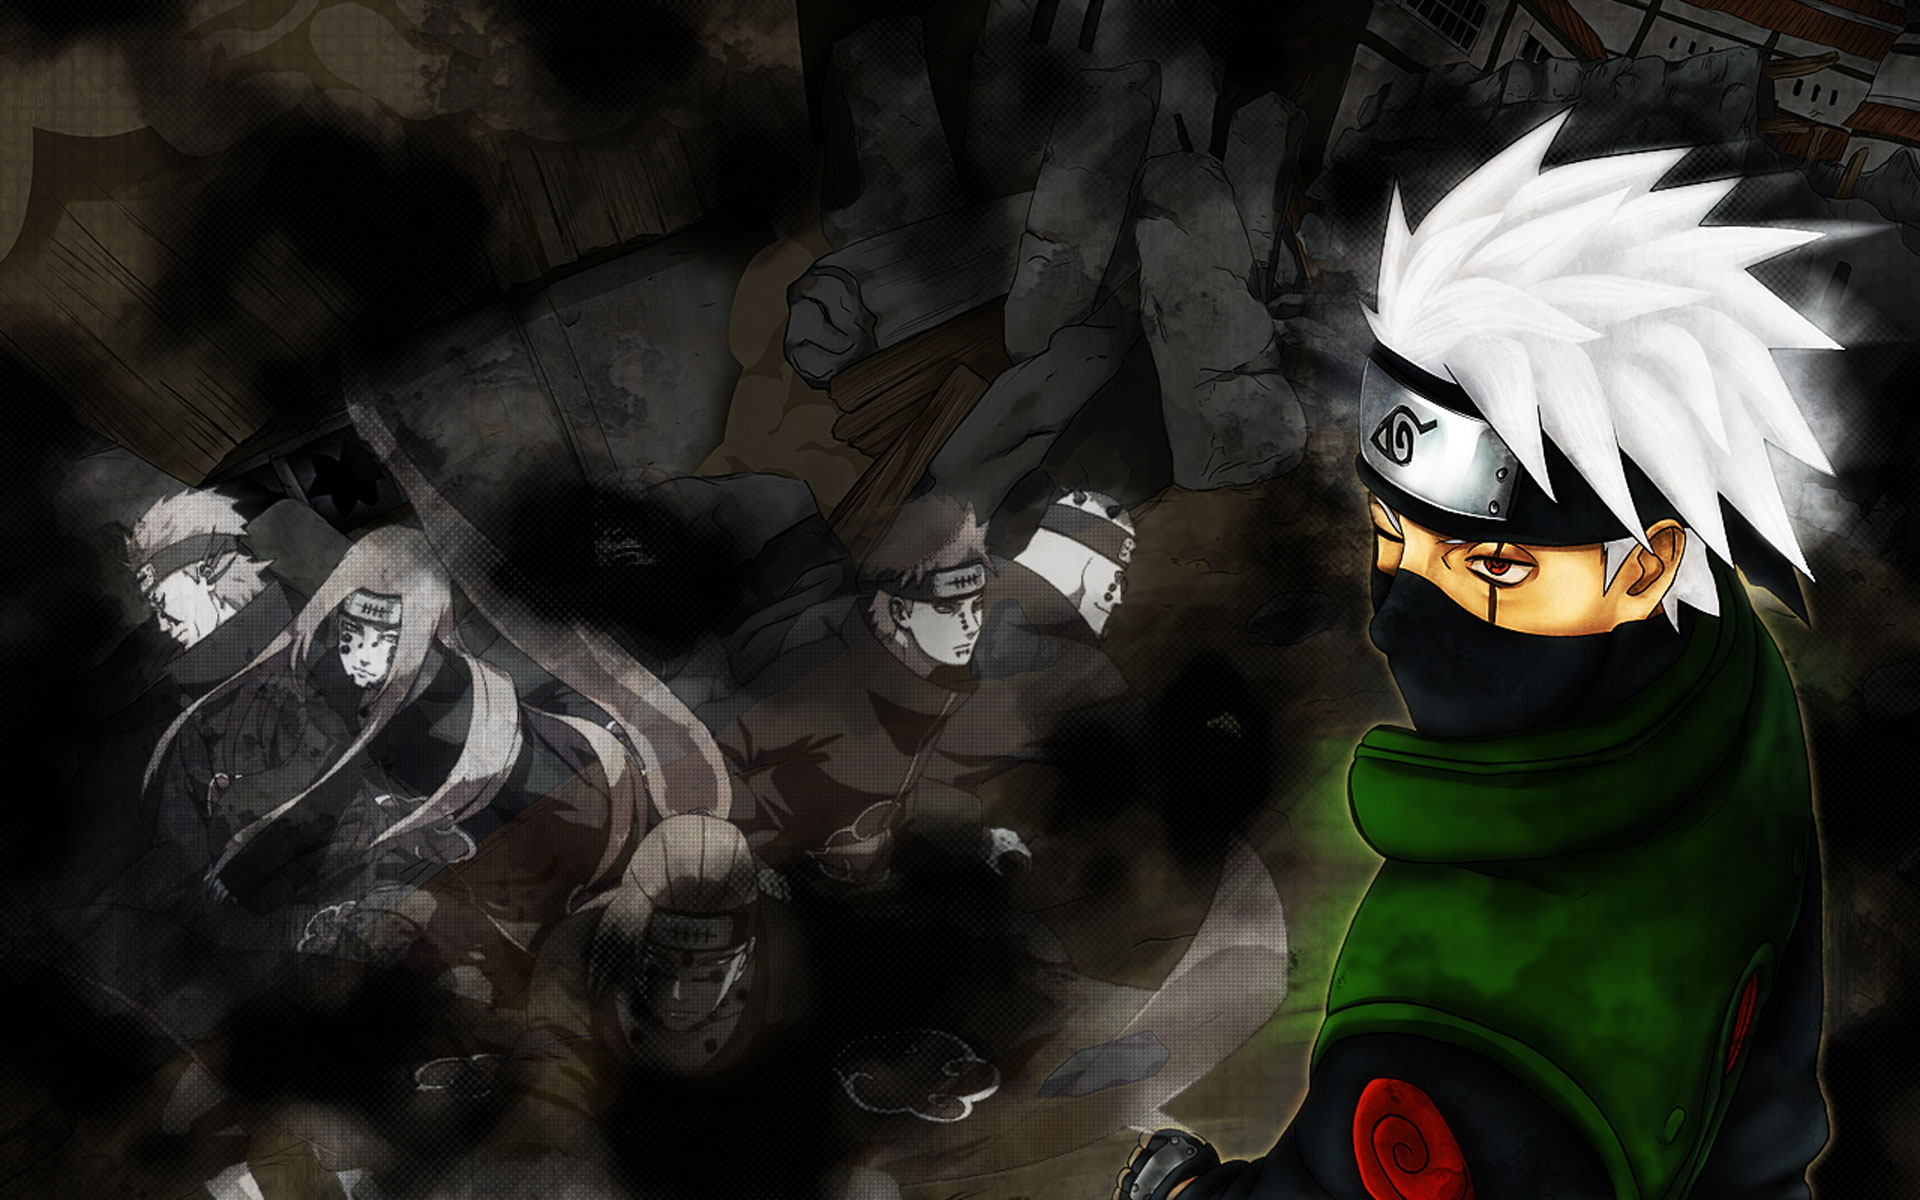 Free Computer Wallpaper Backgrounds For Fall Download Free Kakashi Wallpapers Pixelstalk Net